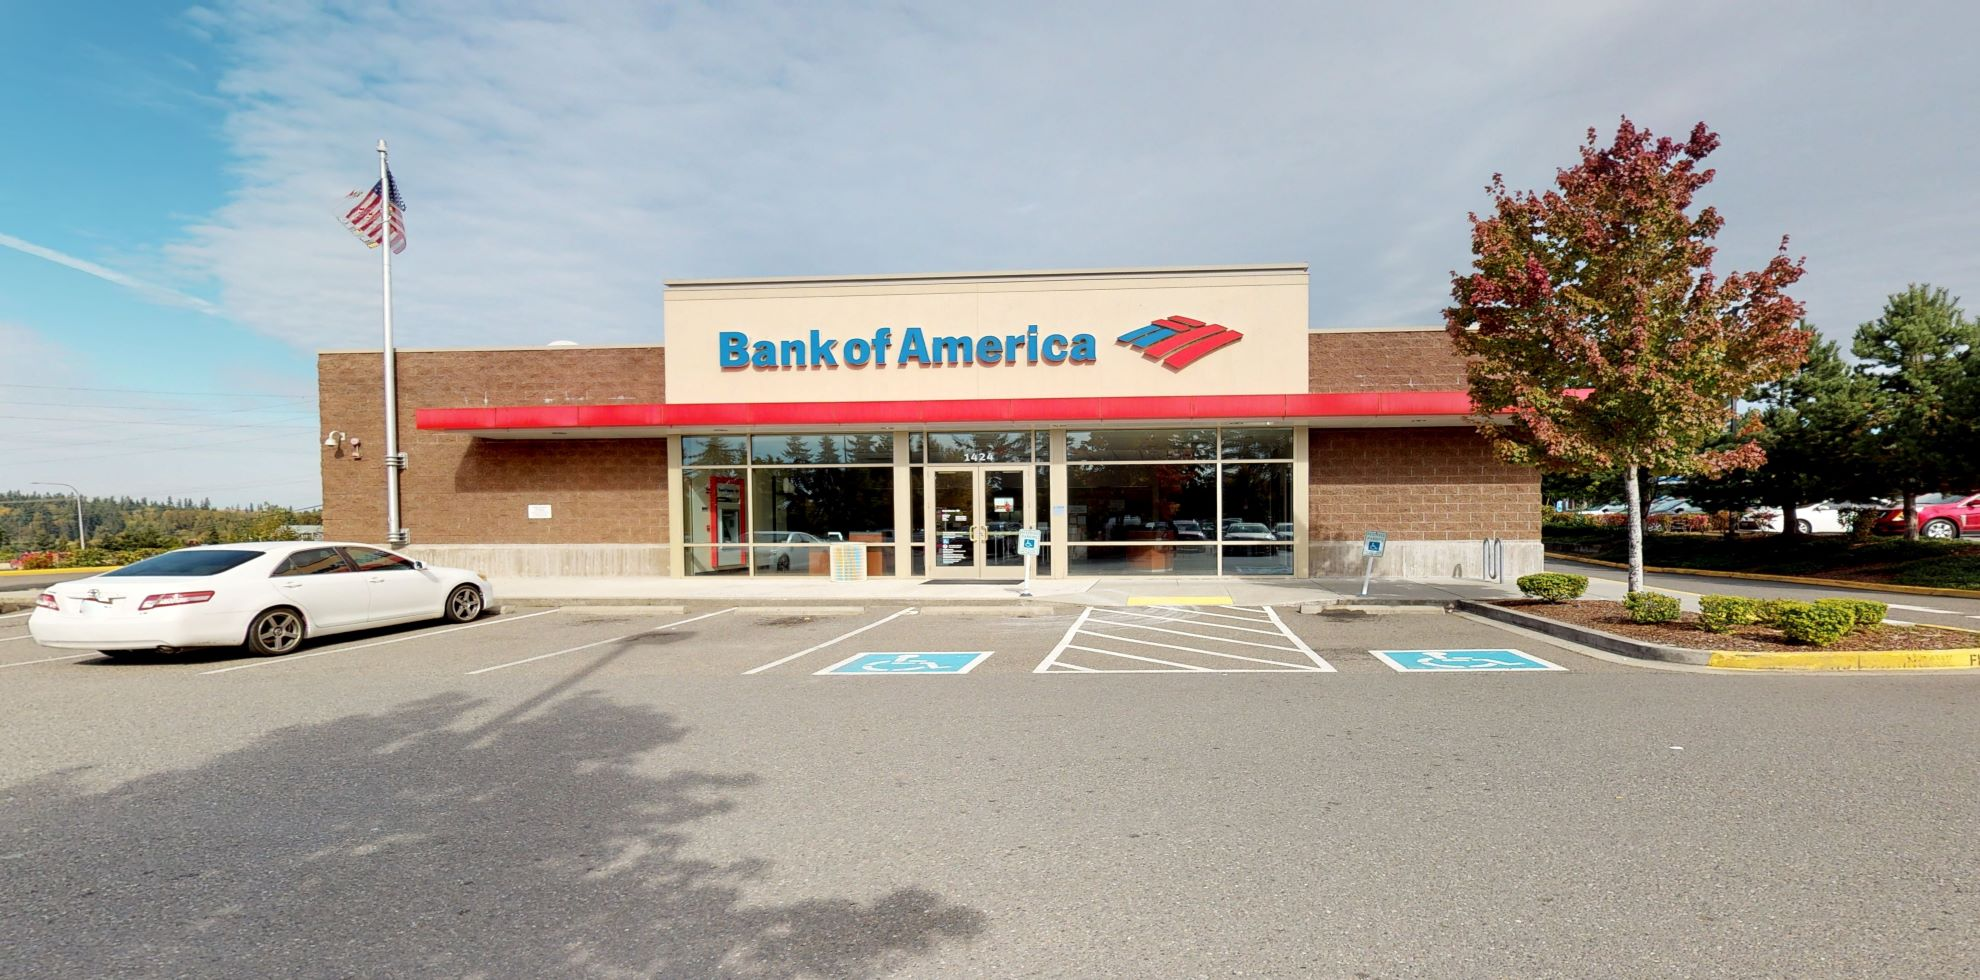 Bank of America financial center with drive-thru ATM   1424 164th St SW, Lynnwood, WA 98087